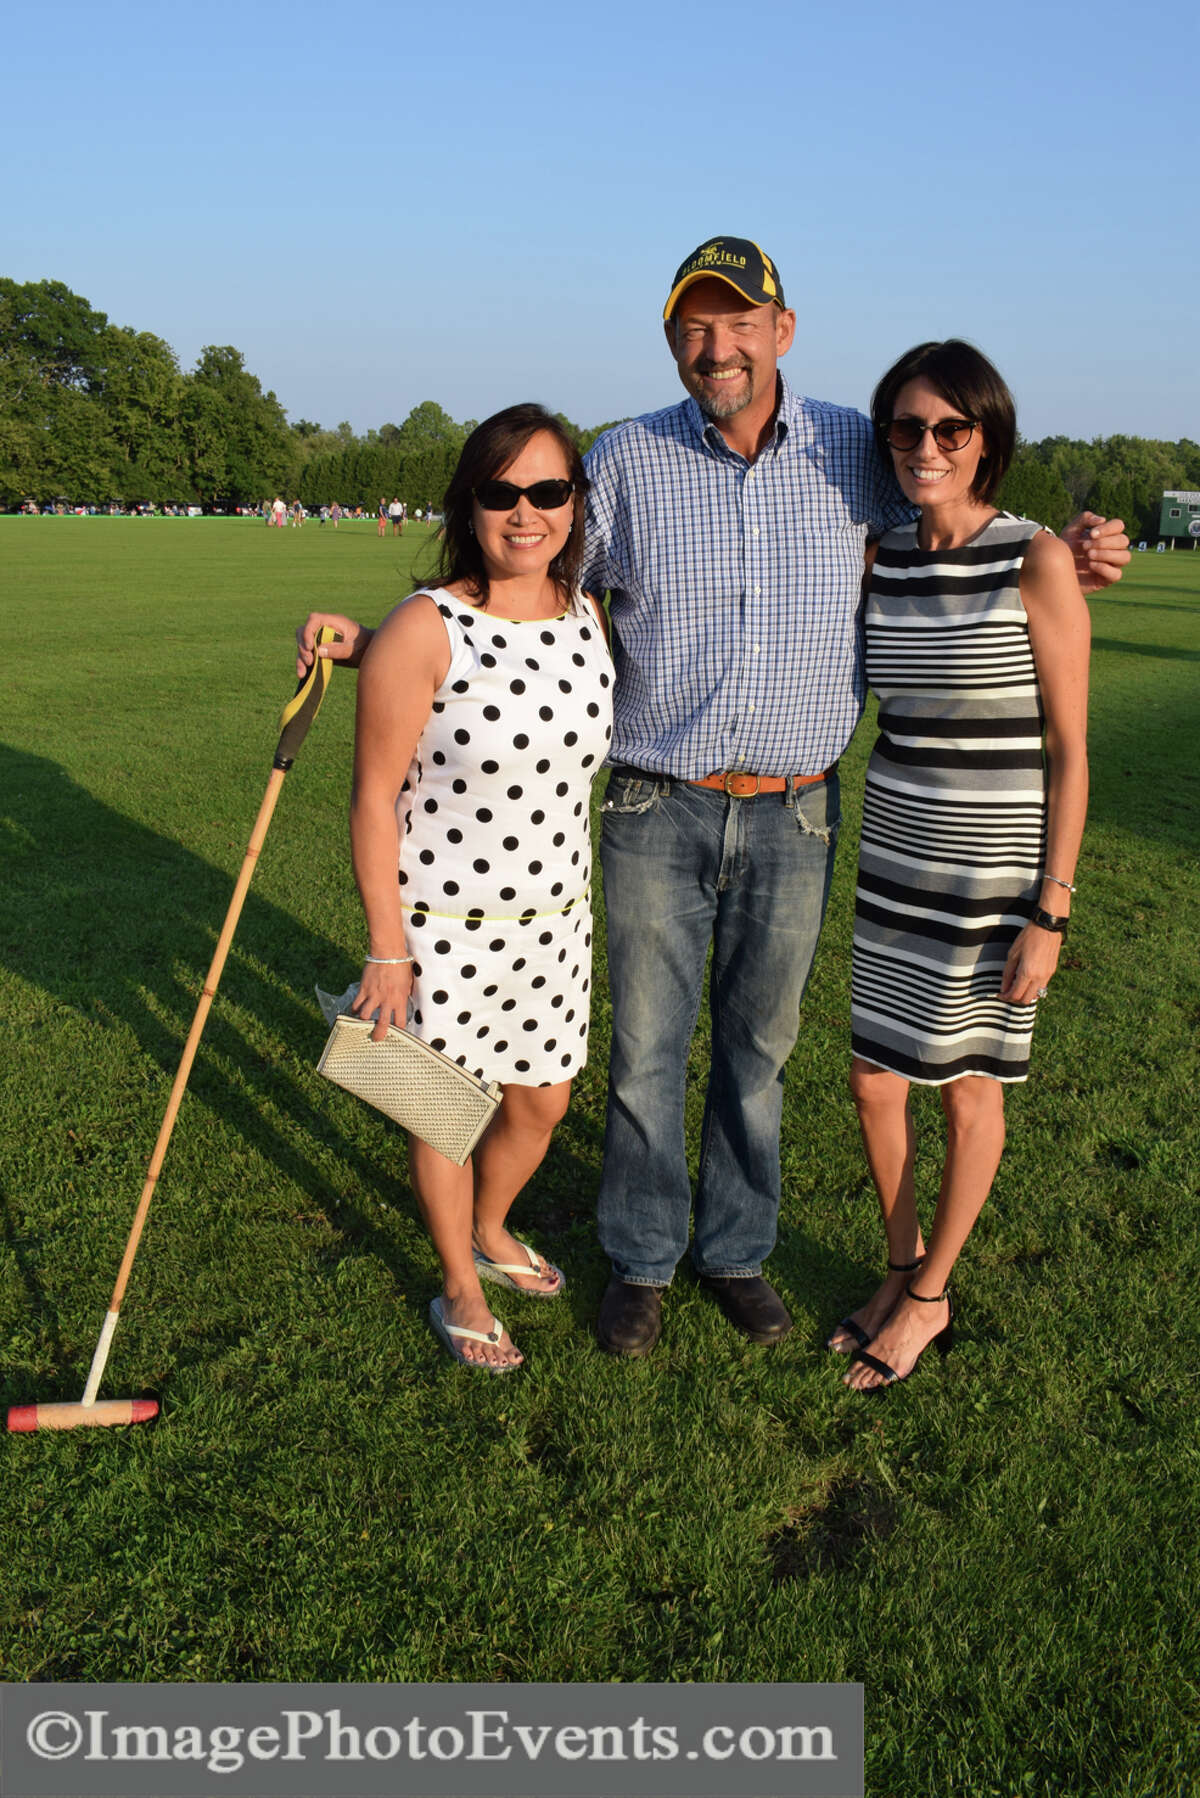 Were you Seen at Saratoga Special Semi Finals at Saratoga Polo Association on August 24, 2018?